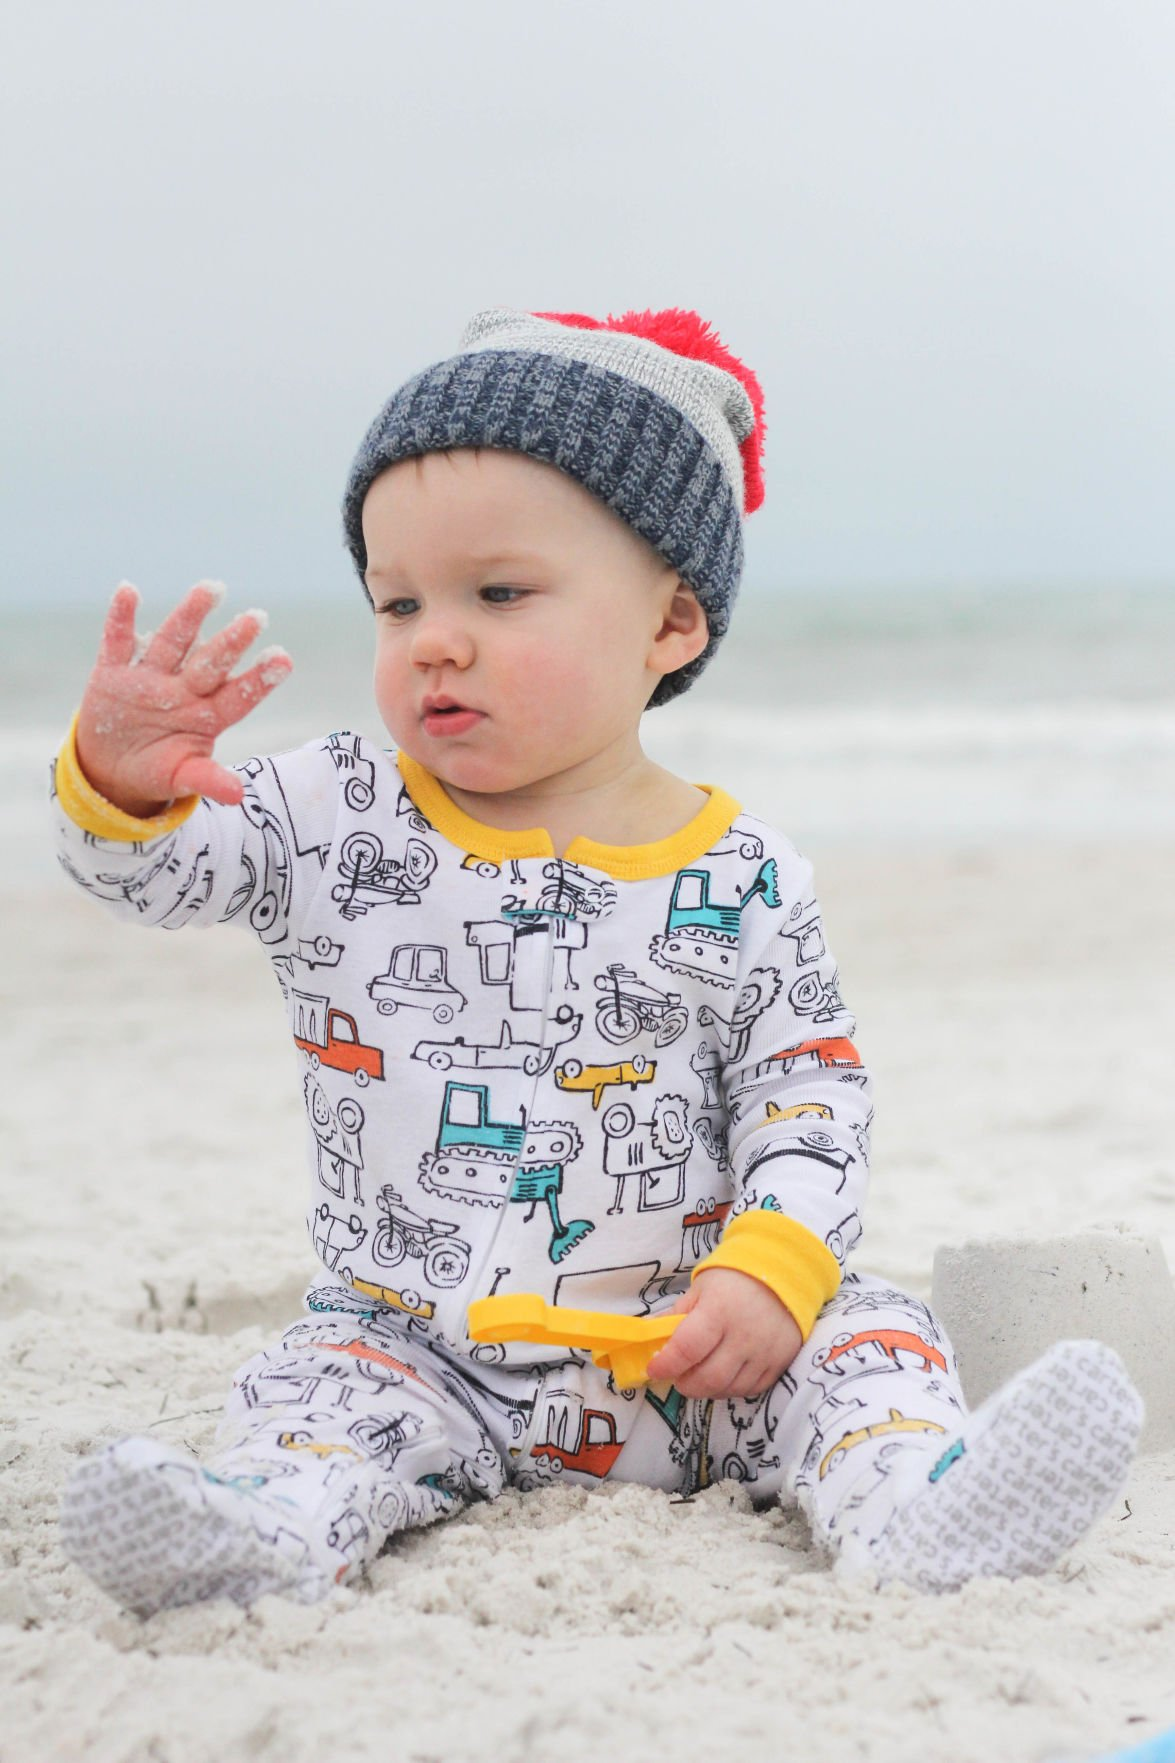 Take 5: Bennett plays in the sand